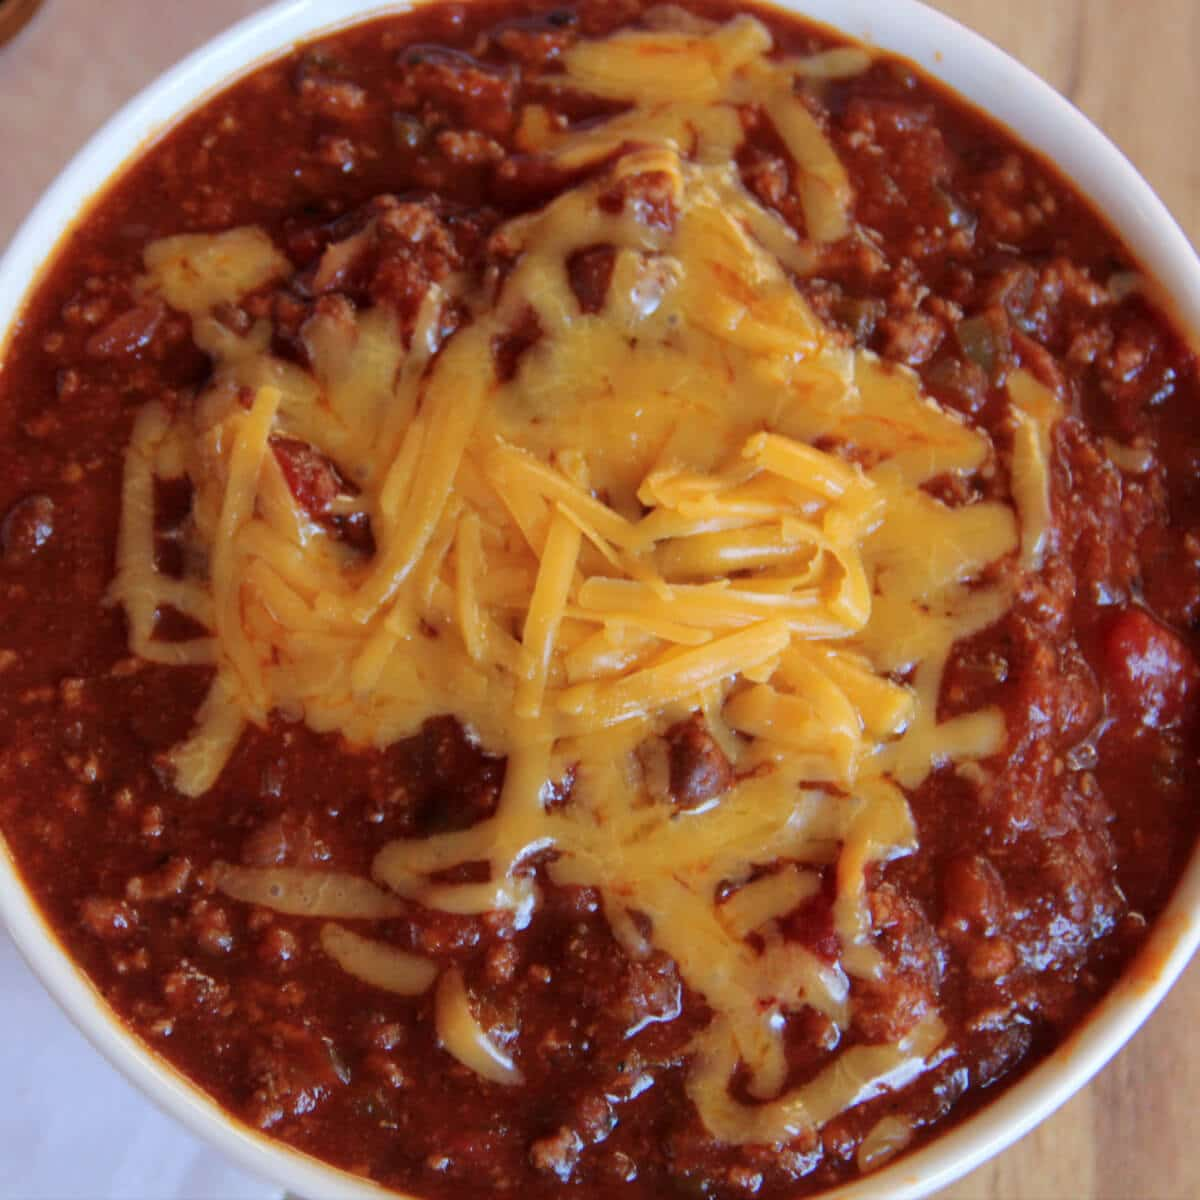 A white bowl of classic beef chili topped with grated cheese.